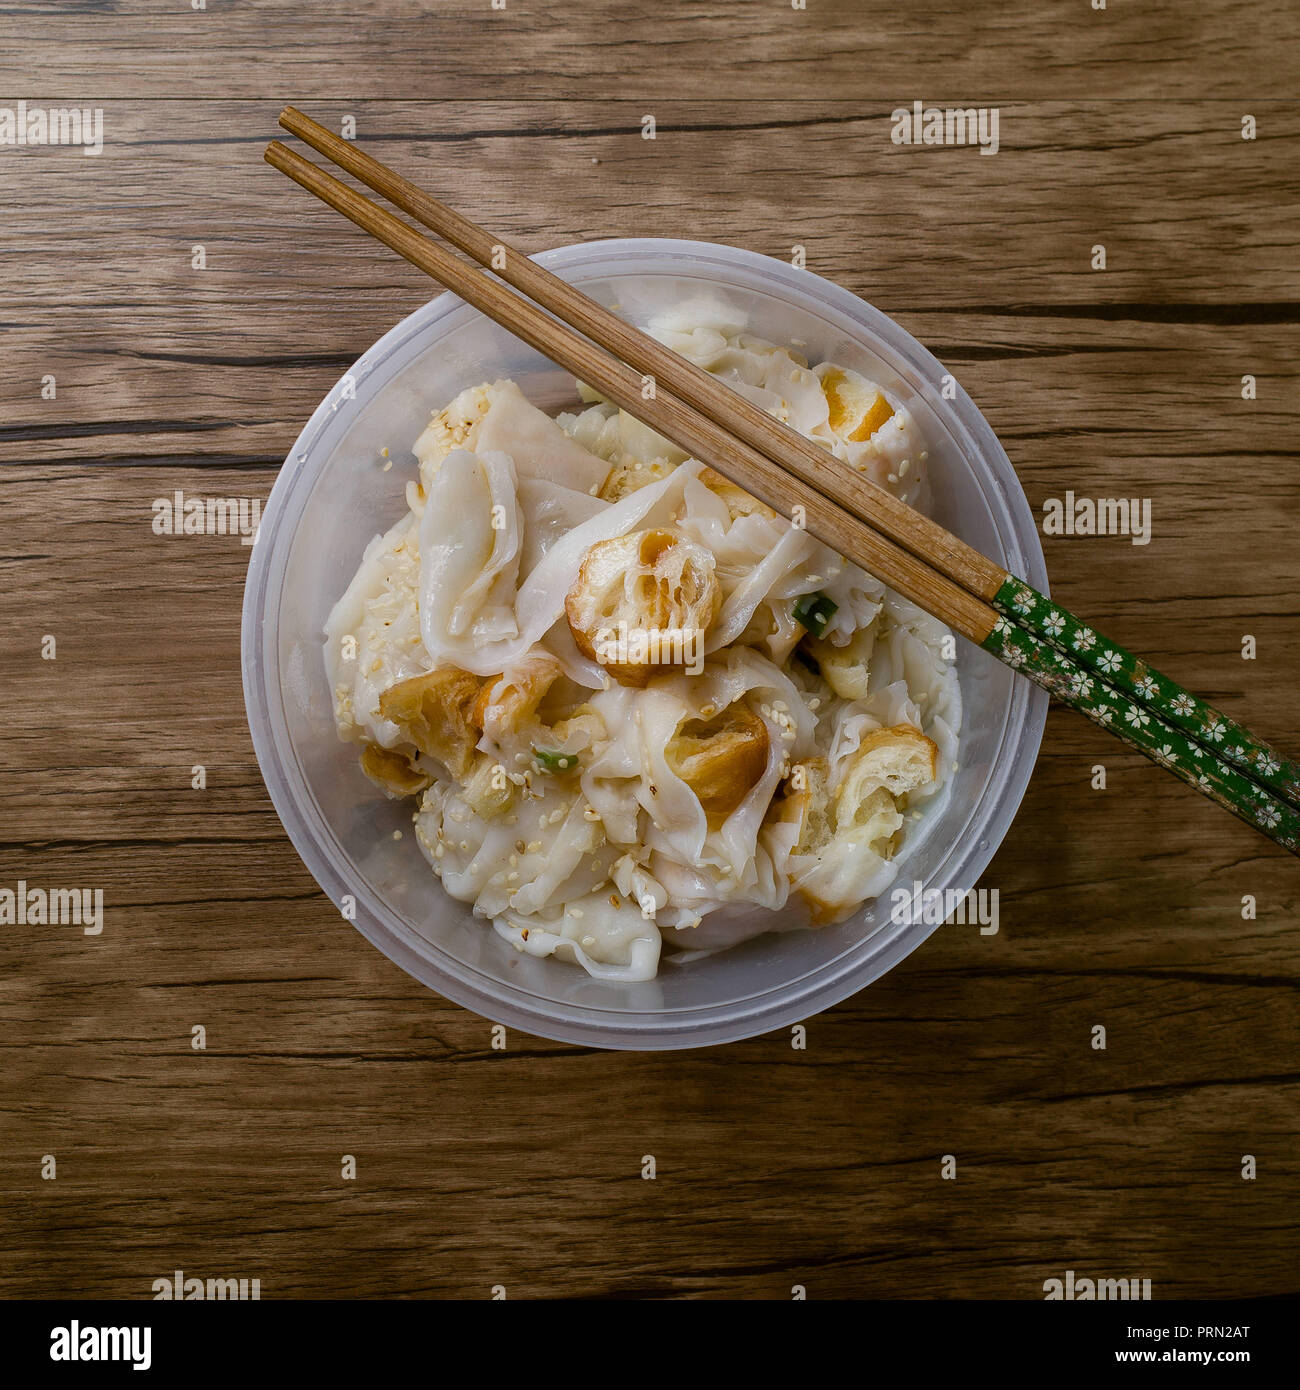 Food Steamed Vermicelli Roll Stock Photo